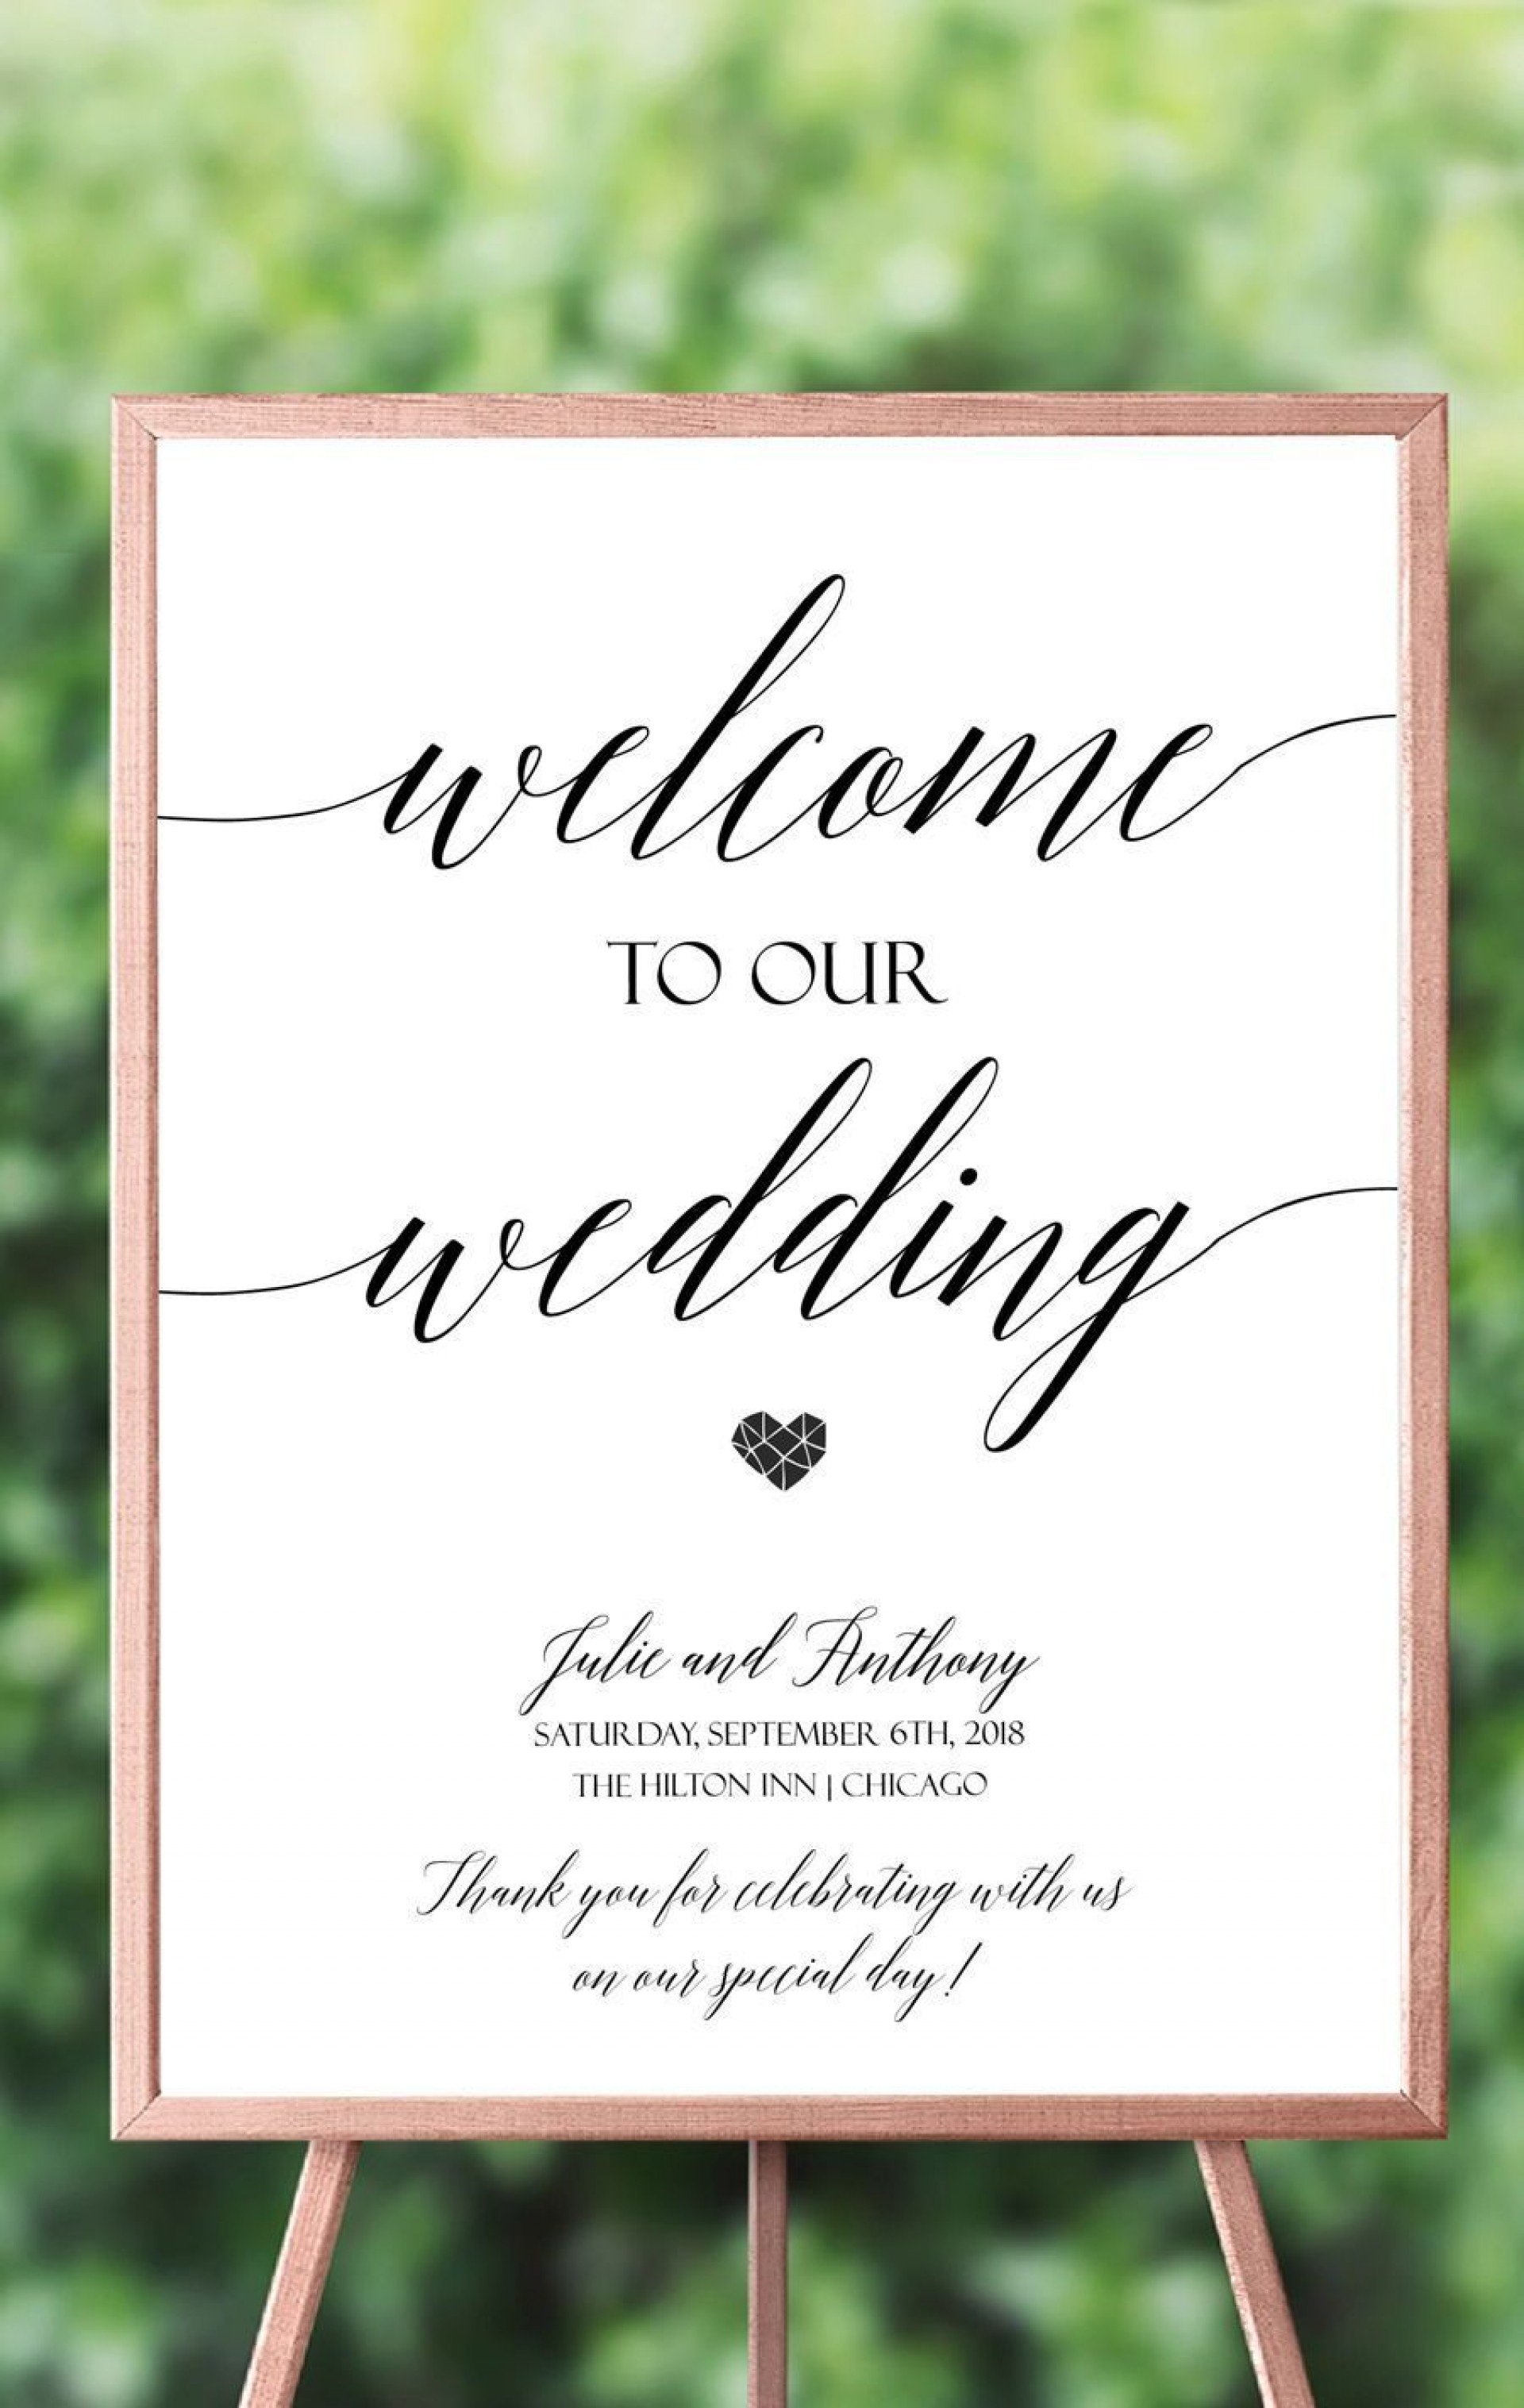 007 Incredible Wedding Welcome Sign Template Free Highest Clarity 1920